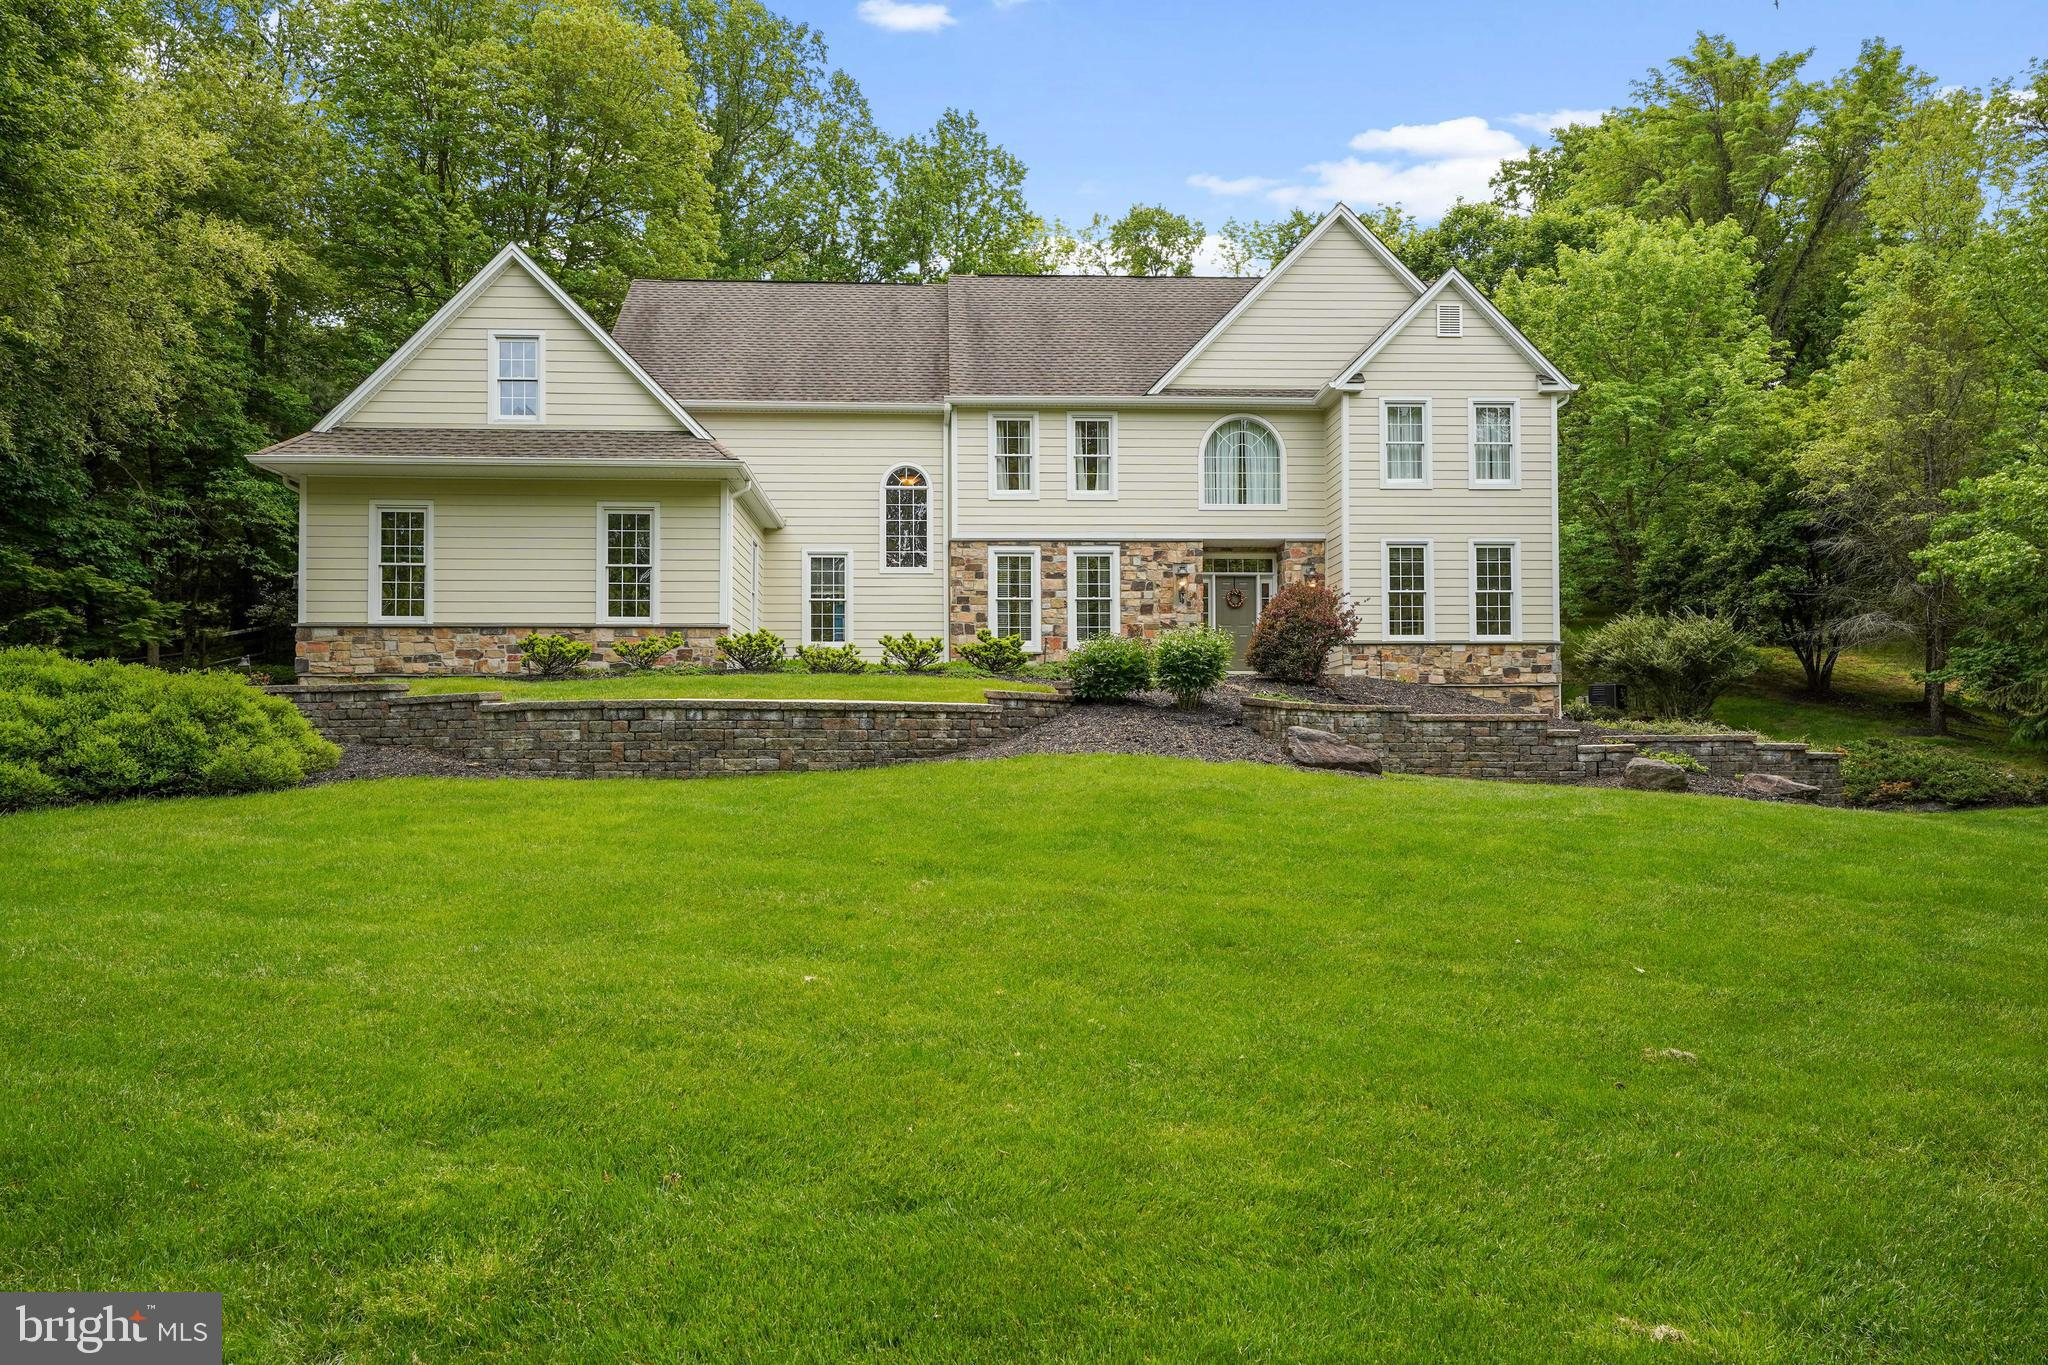 Welcome to 1017 Ballintree Lane, an awesome, classic  5 bedroom 4.5 bath home with fabulous landscaping and an incredible pool!  Nestled in the popular neighborhood of Courts at Longwood this attractive home has been lovingly maintained by its current owner.  From the gleaming hardwoods in the entry hall and throughout the sun-lit first floor you will feel the spacious and welcoming vibe of this lovely home.  The home features an updated kitchen with beautiful wood cabinetry, granite countertops and large island - which opens onto the beautiful, cozy family room, complete with stone gas fireplace and attractive built ins!  There are elegant formal dining room and living room spaces as well as a large, quiet office space and first floor laundry.  Amazing 3 bay garage with lots of storage besides.  The show stopper and focal point for entertaining and enjoyment of this home is the amazing patio and pool area , complete with hot tub and waterfall! This home has all five bedrooms on the second floor, one bedroom with an en suite and the primary bedroom with  an expansive, neutral primary bath and walk in closet.  Lower level features a finished walk-out basement with additional office space.  Courts at Longwood is a convenient community great for walks around the pond and nearby walking trails as well as bike rides .  This home is in the award -winning Unionville Chadds-Ford School District and  convenient to the fun shops and restaurants of both Kennett Square and West Chester.  Close to  Longwood Gardens,  Brandywine River Museum, Galer Winery and many other local attractions.